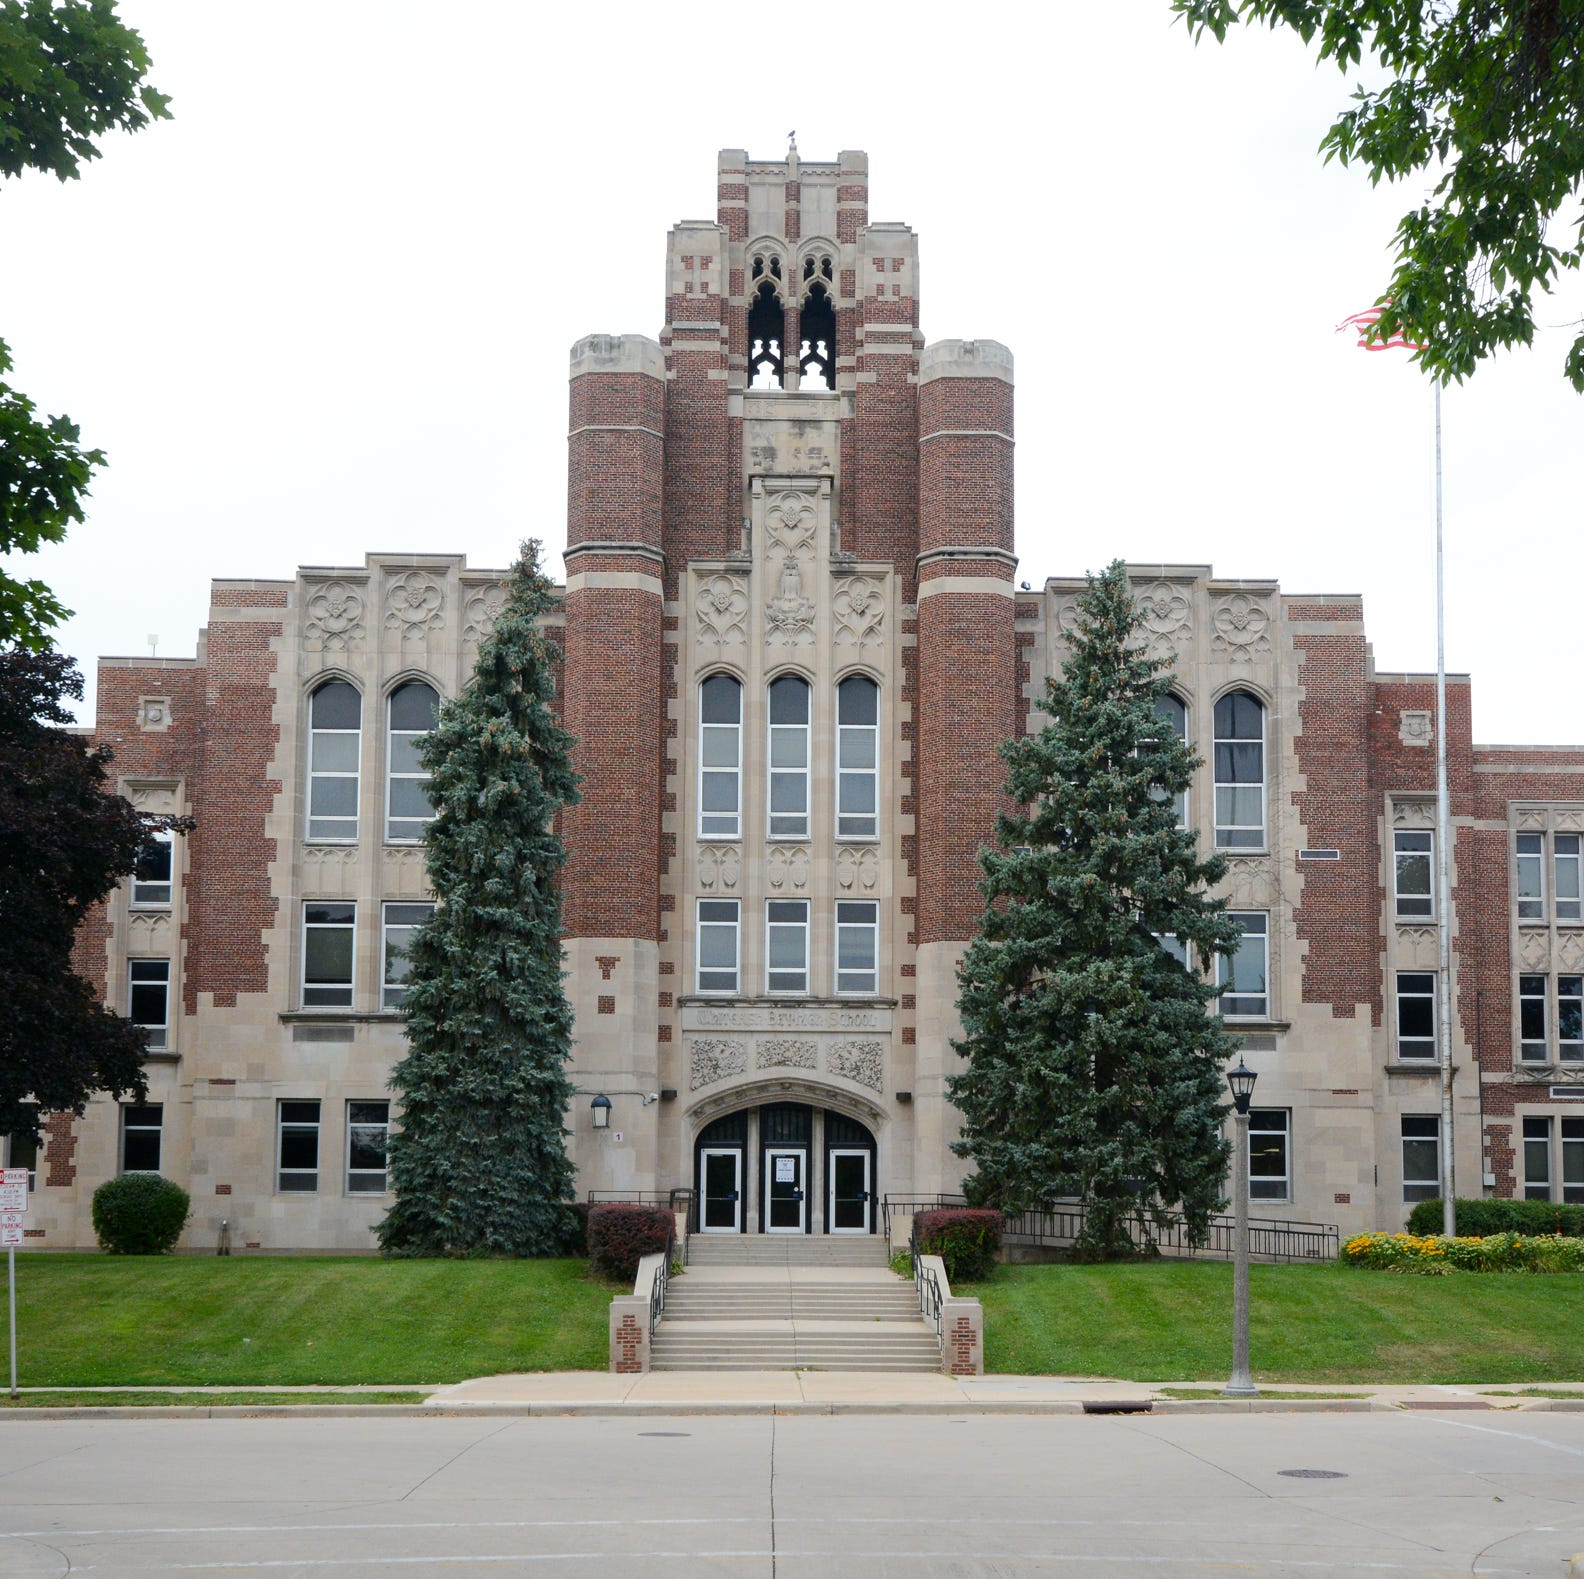 Some Whitefish Bay students asked black classmates for permission to use n-word